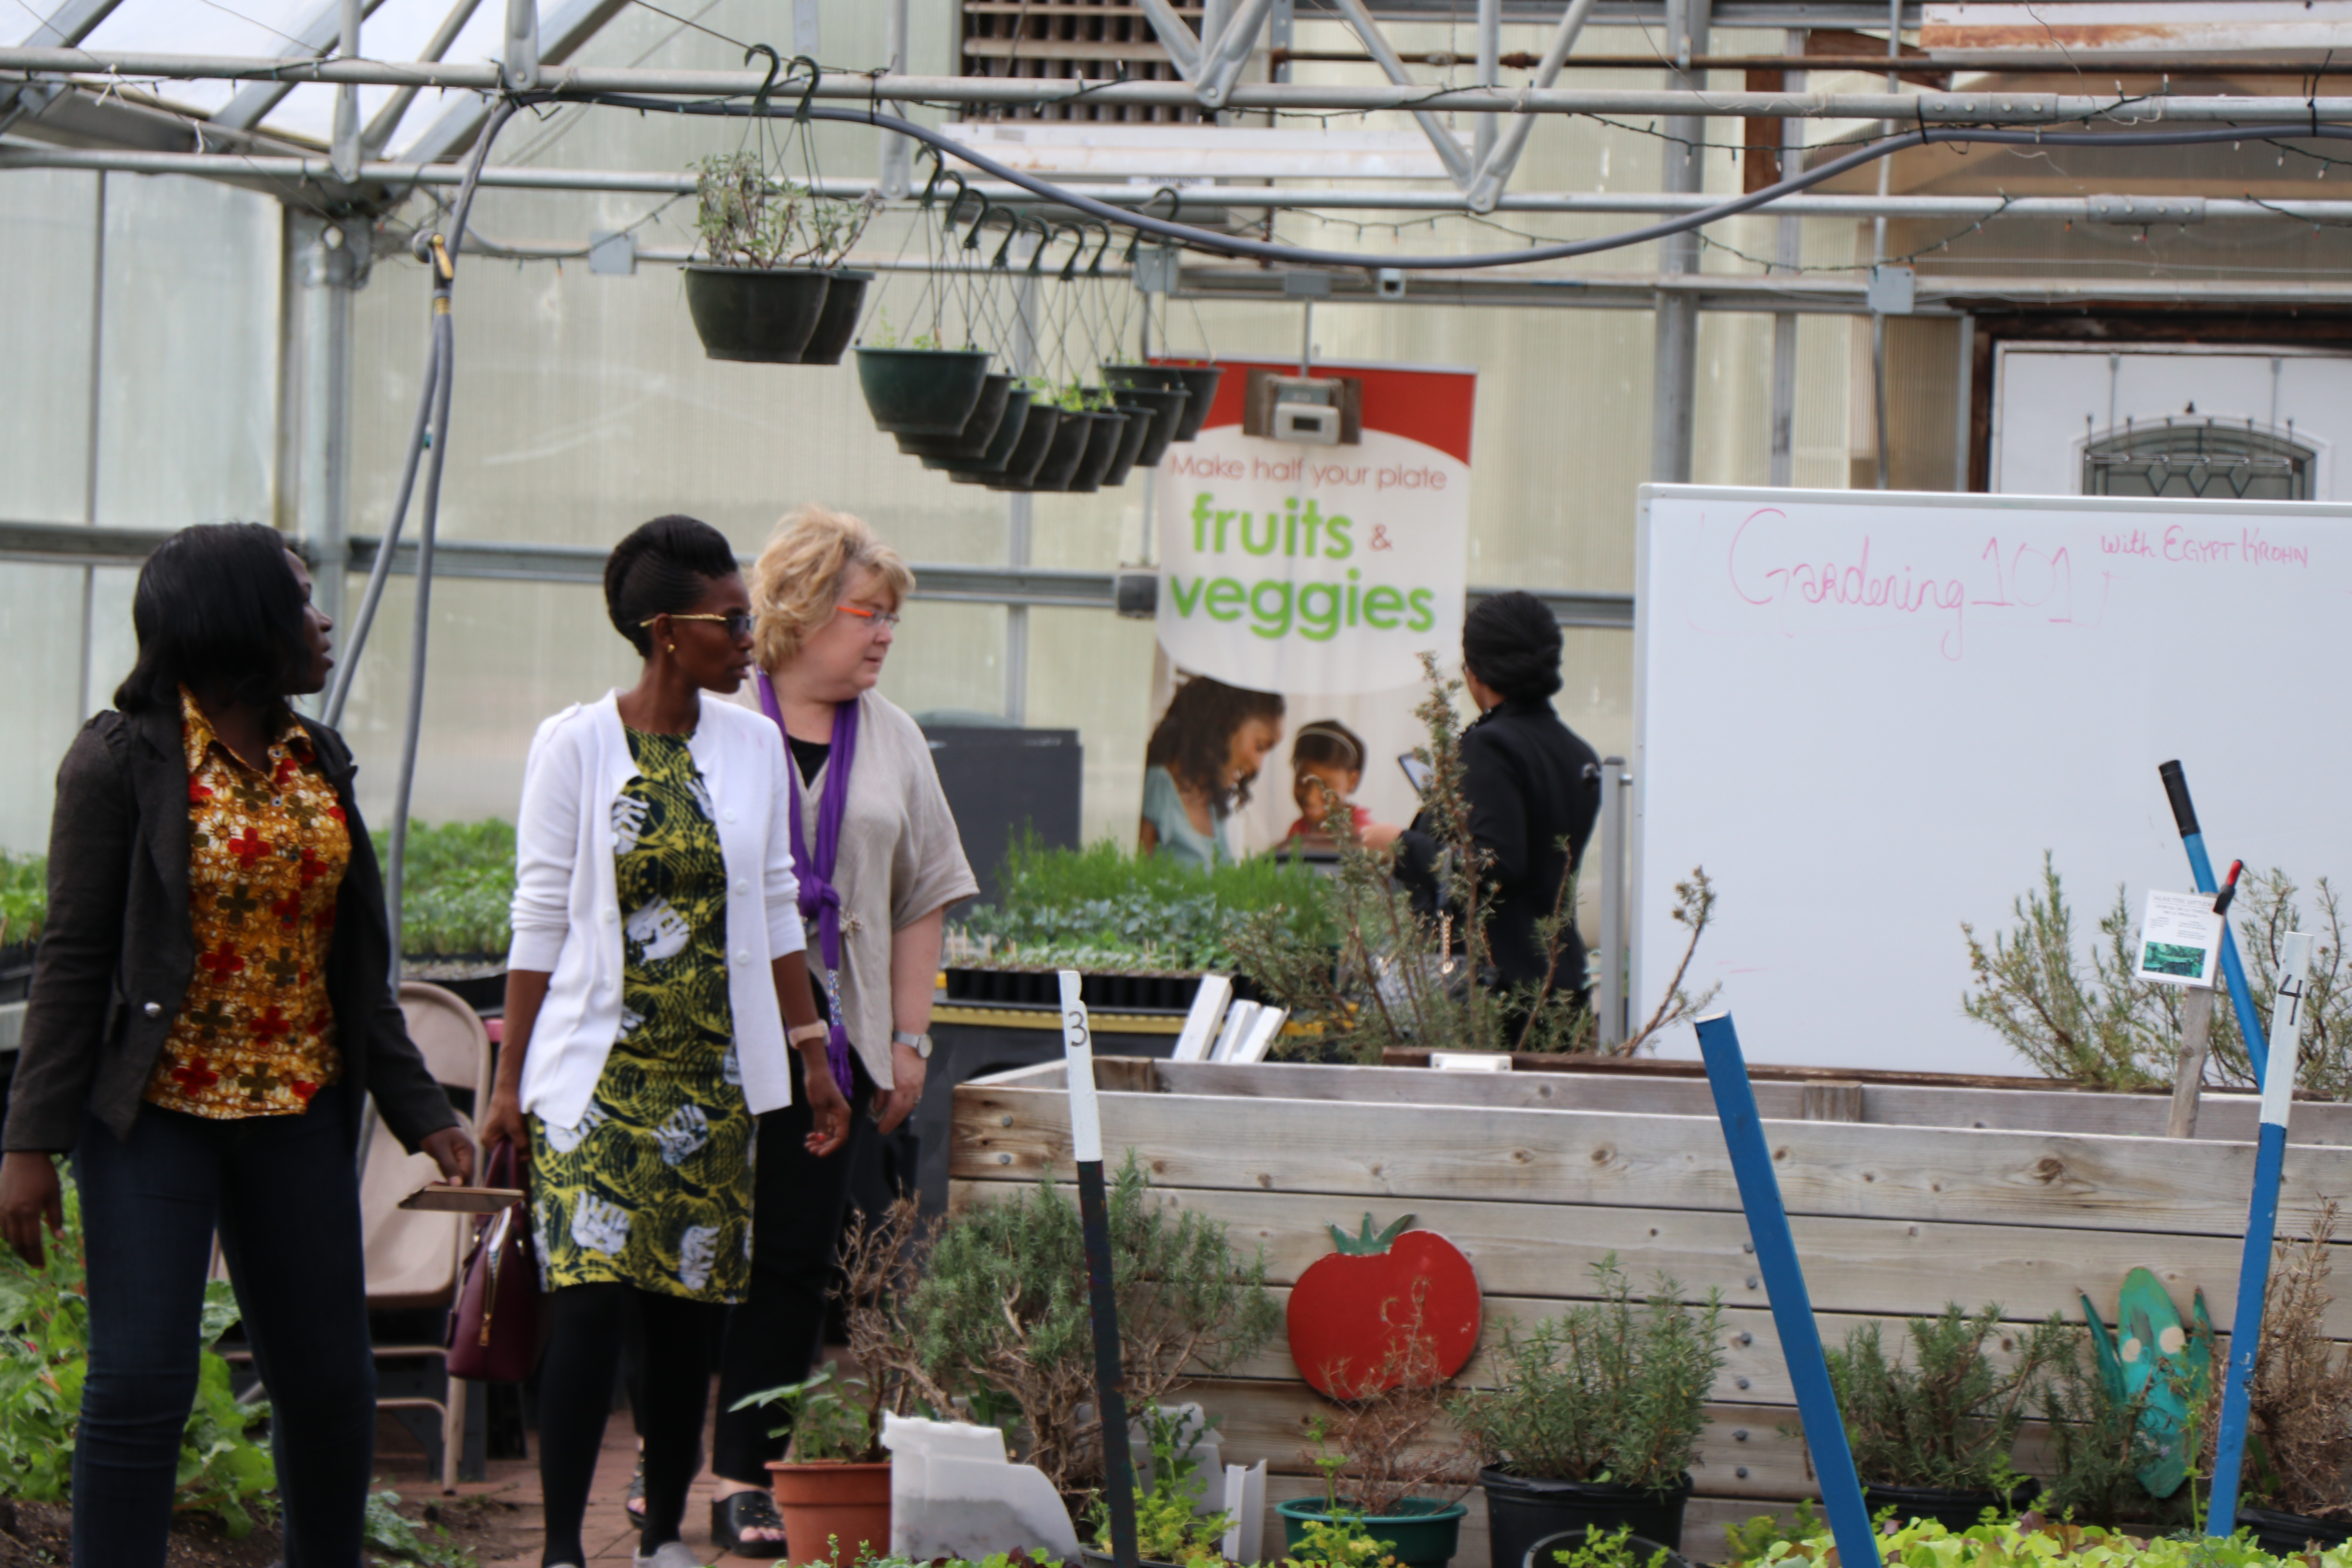 Dorcus Alowo, Christa Muzanila, and faculty member Wynne Wright in Hunter Park GardenHouse